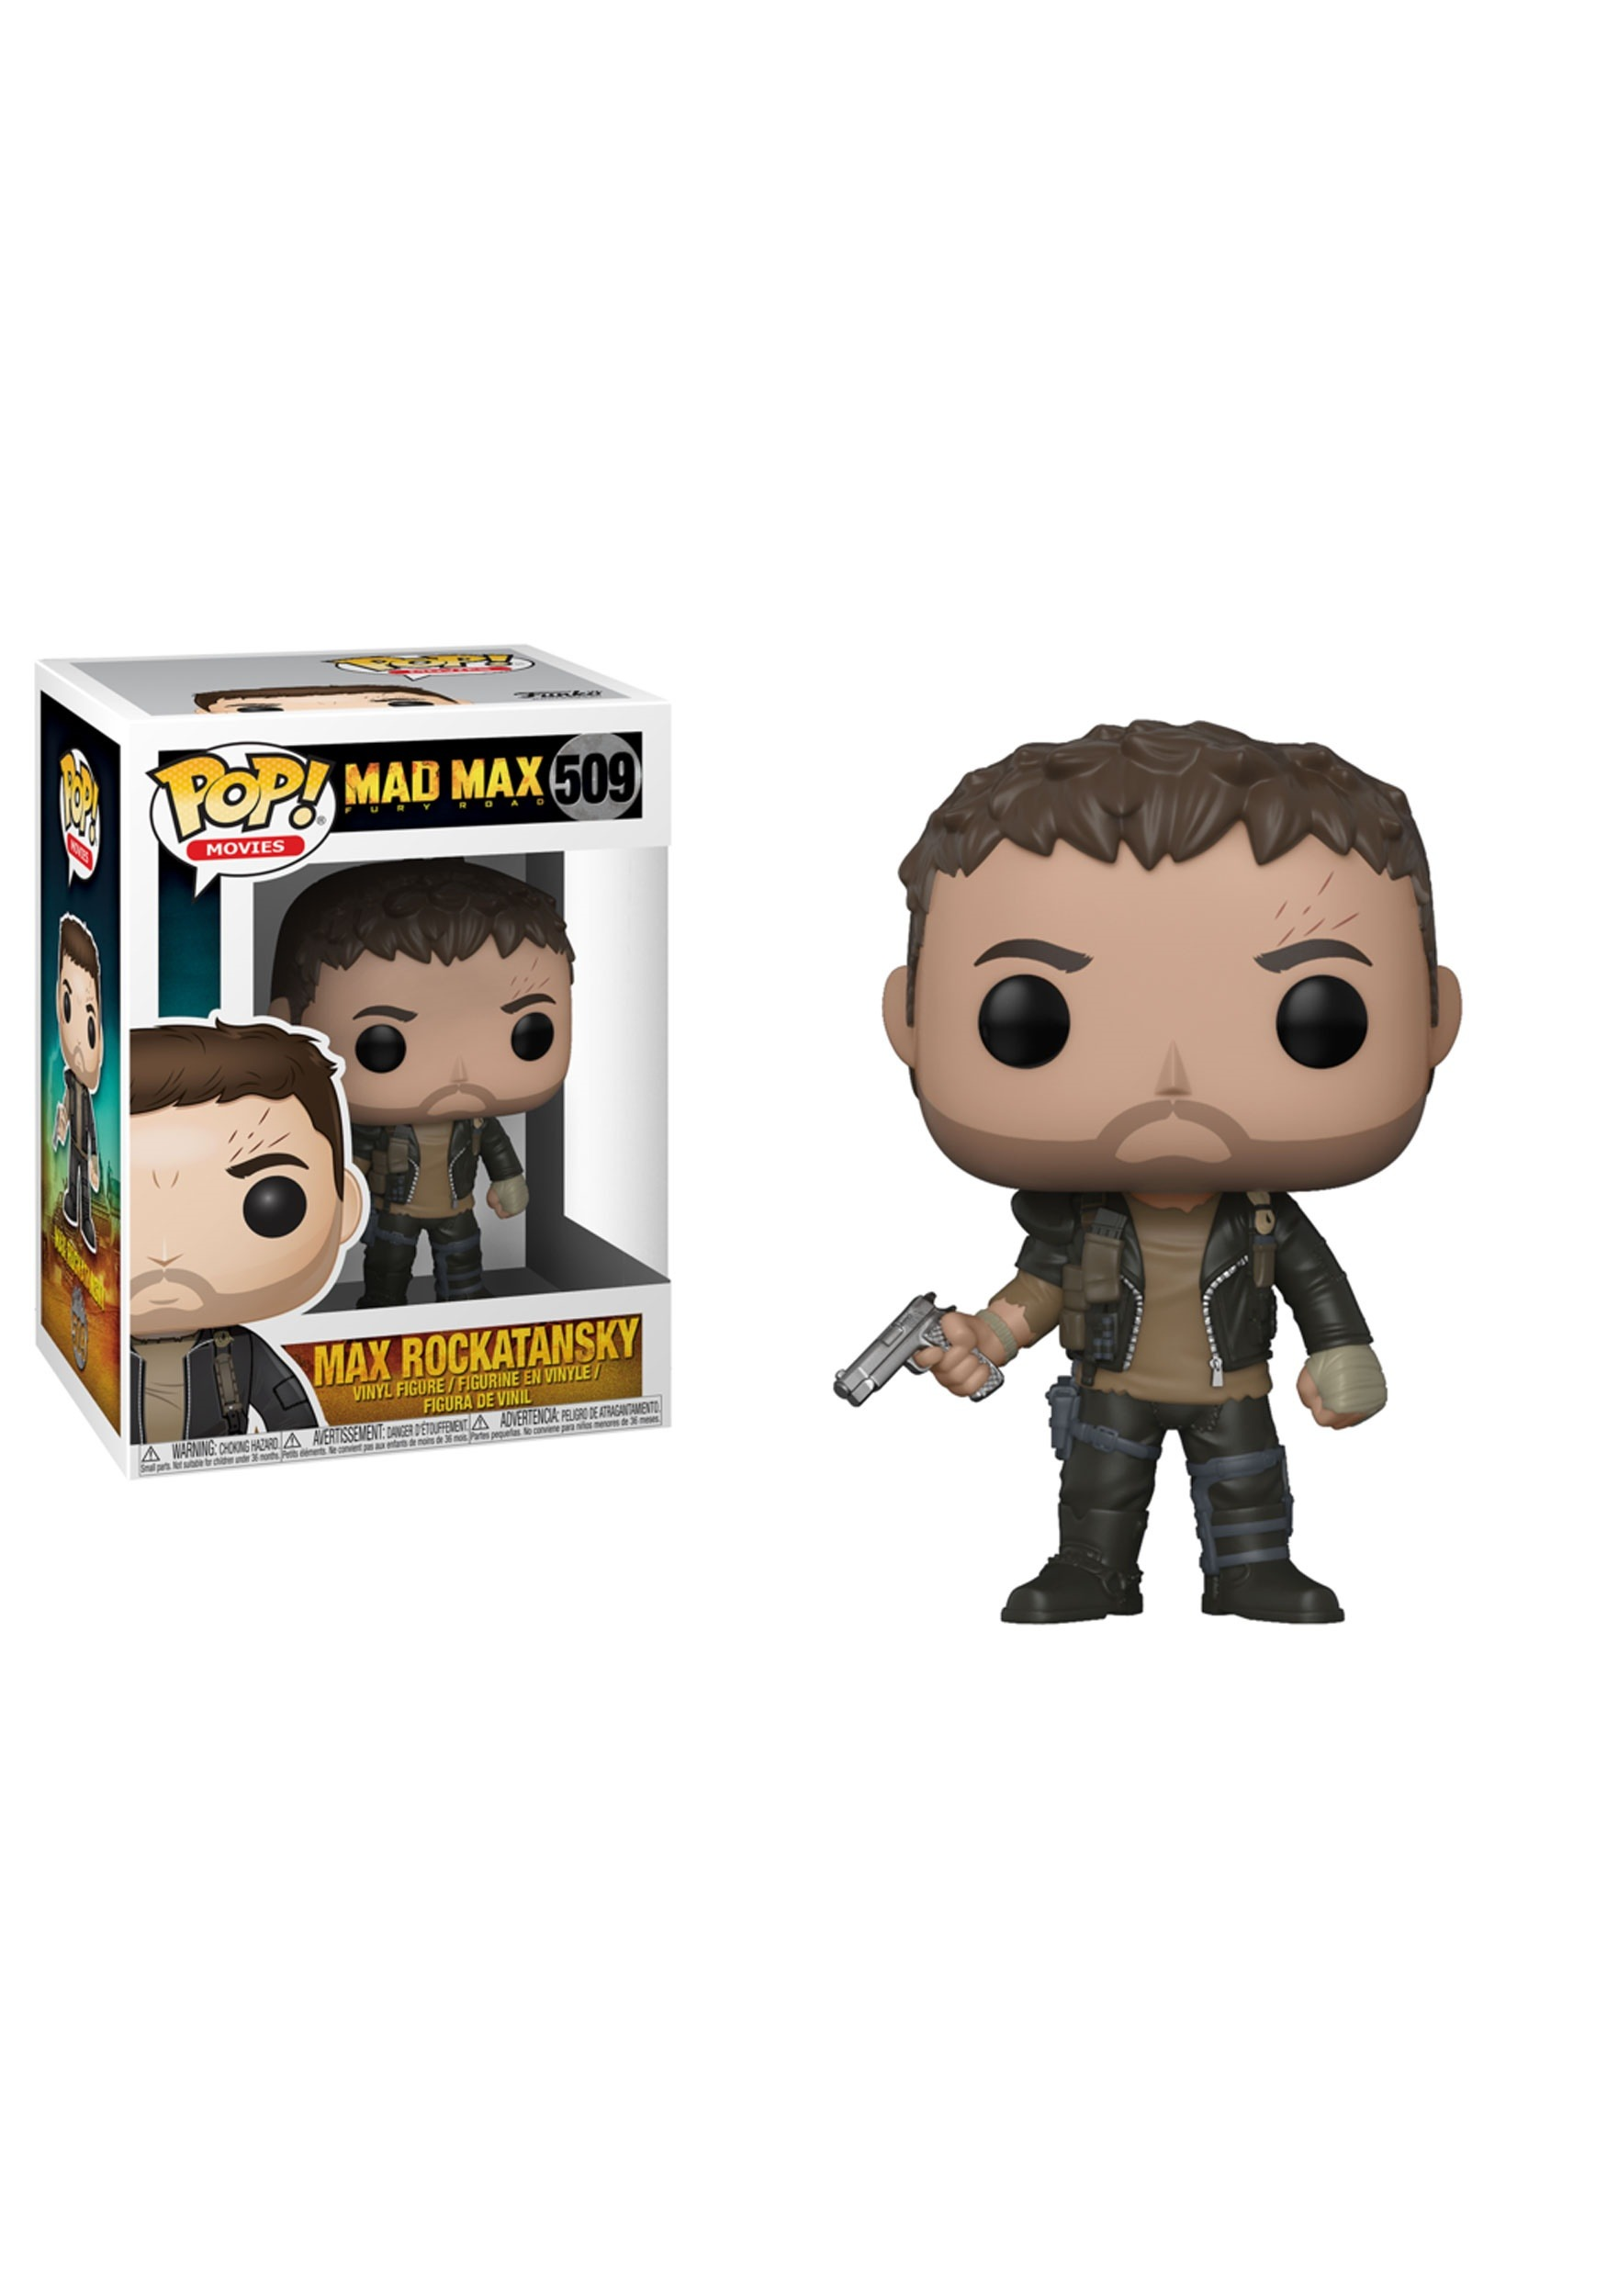 Nux Shirtless Brand New In Box Mad Max Fury Road POP Movies Funko